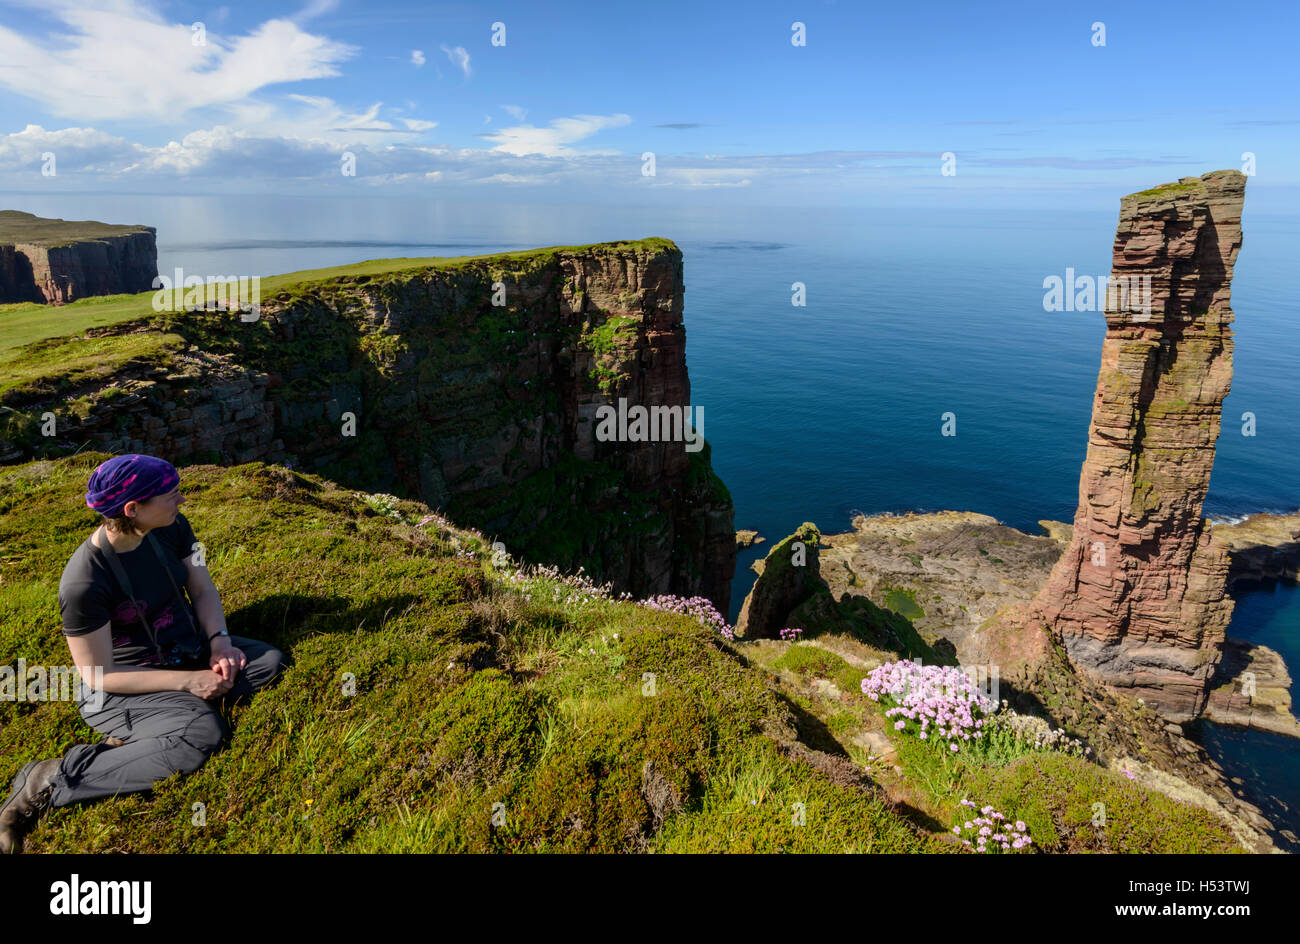 Female tourist looking towards the Old Man of Hoy, Hoy, Orkney Islands, Scotland. - Stock Image